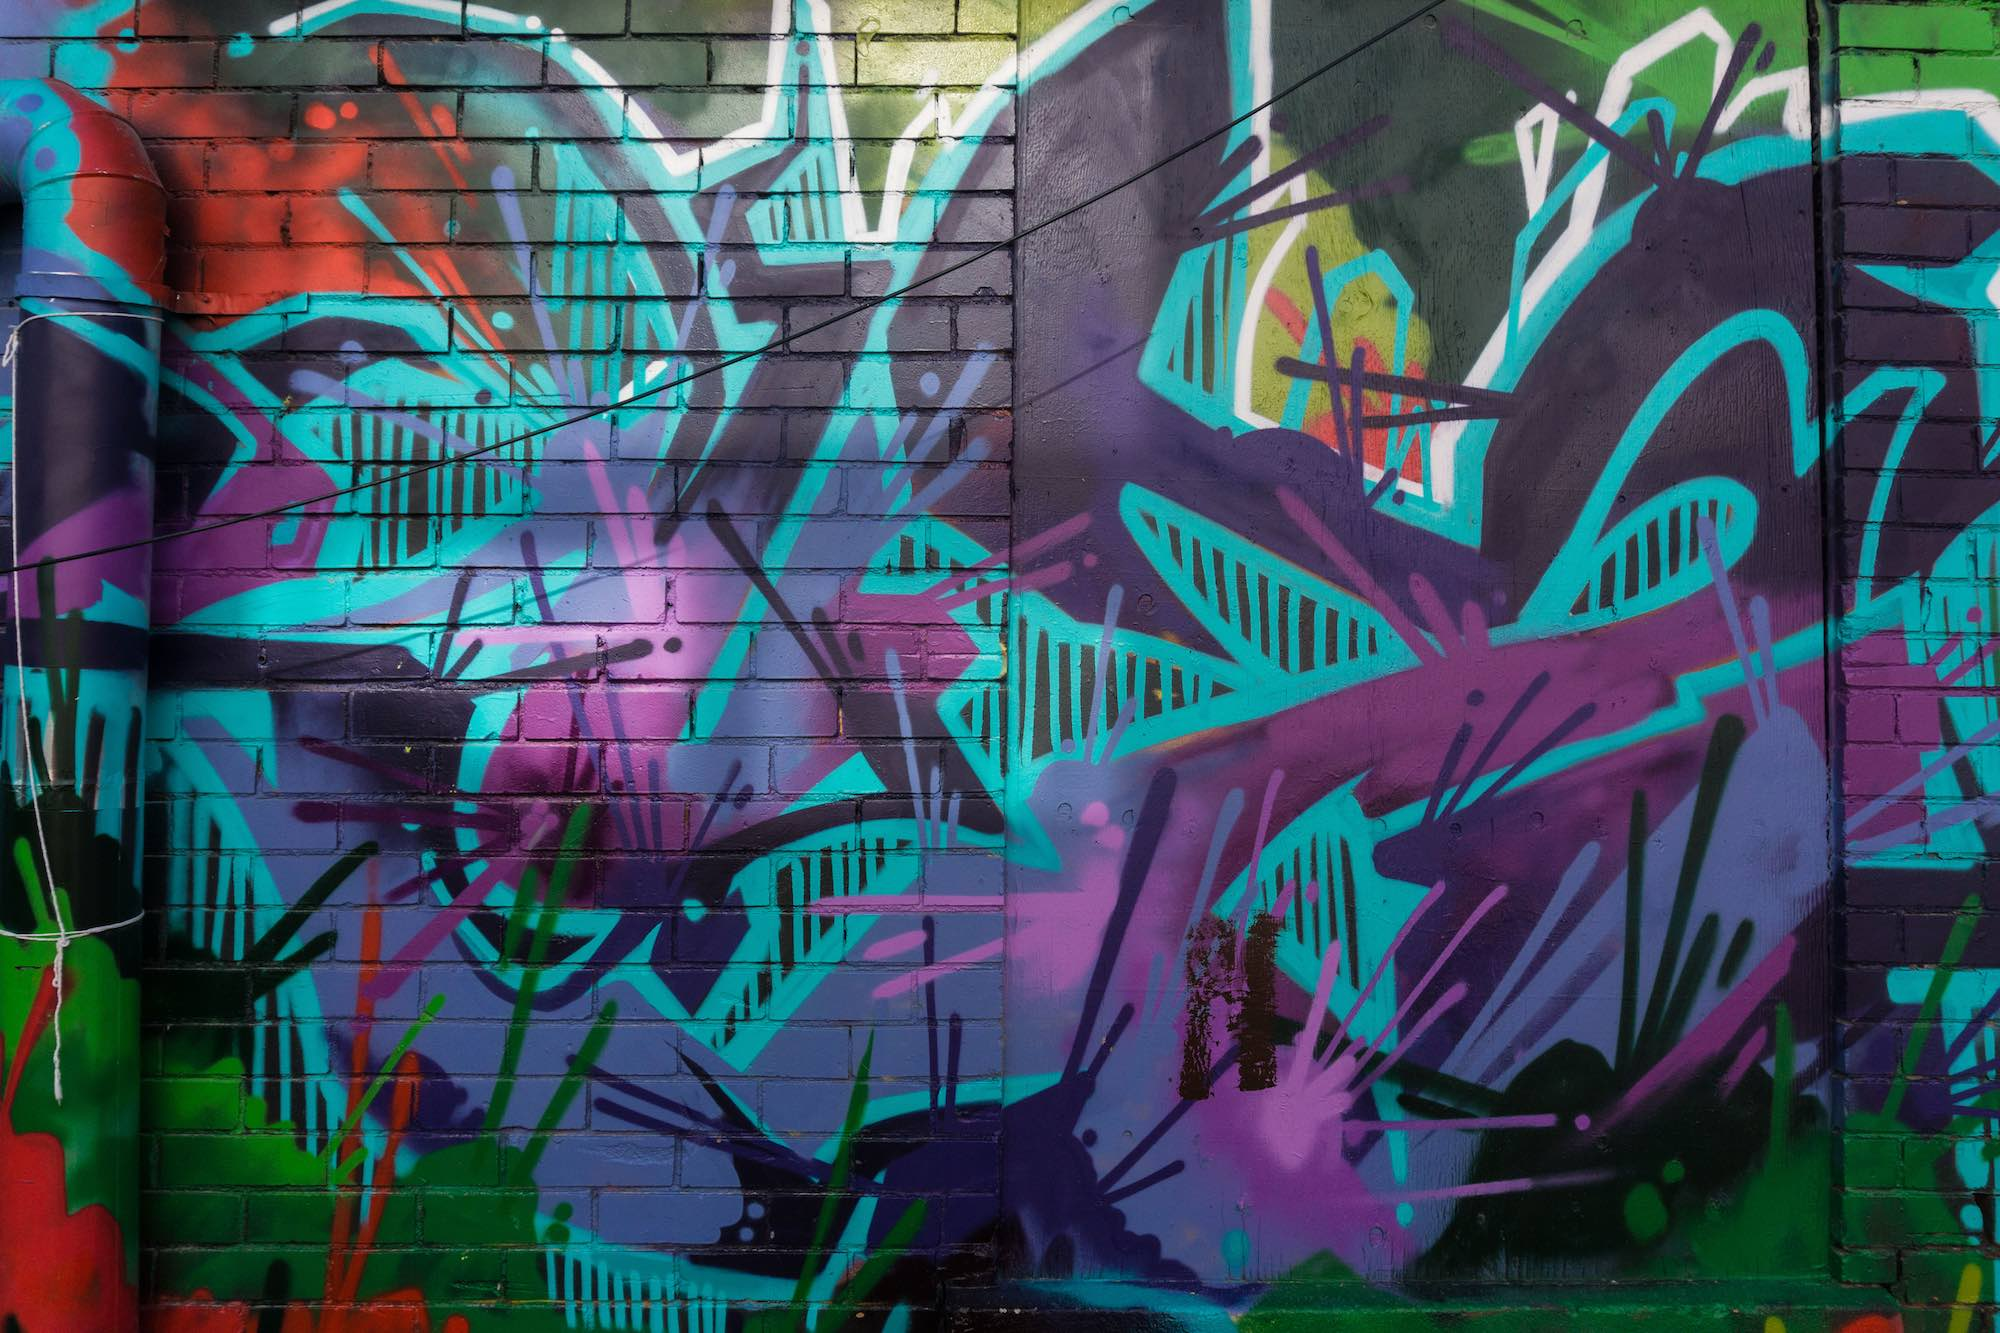 Graffiti wall toronto downtown - Kensington Meaning Unclear And Perhaps Irrelevant